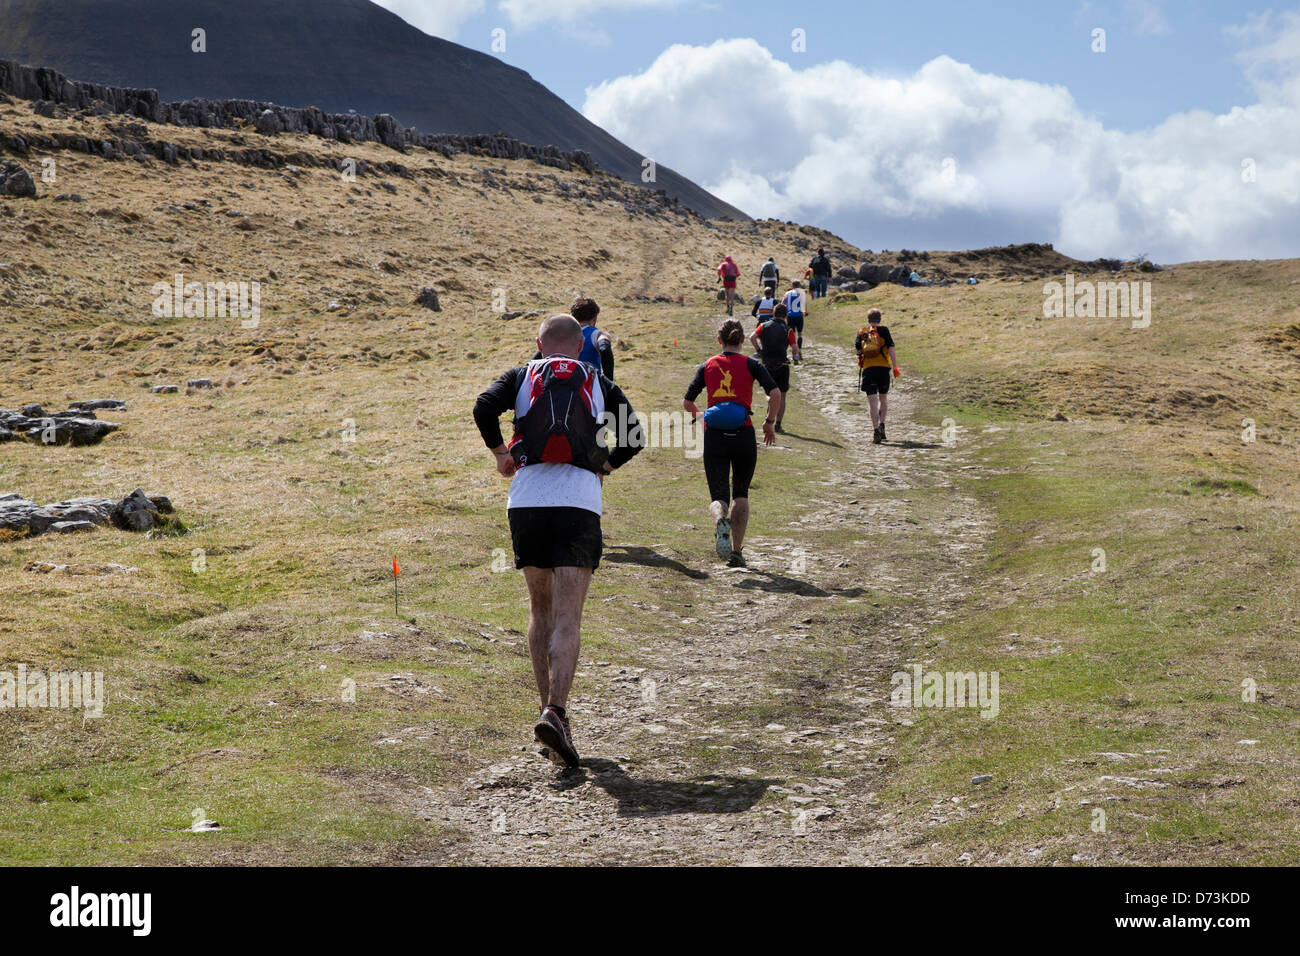 Yorkshire Three Peaks Challenge Saturday 27th April, 2013. The 59th Annual 3 Peaks Race with 1000 fell runners starting - Stock Image